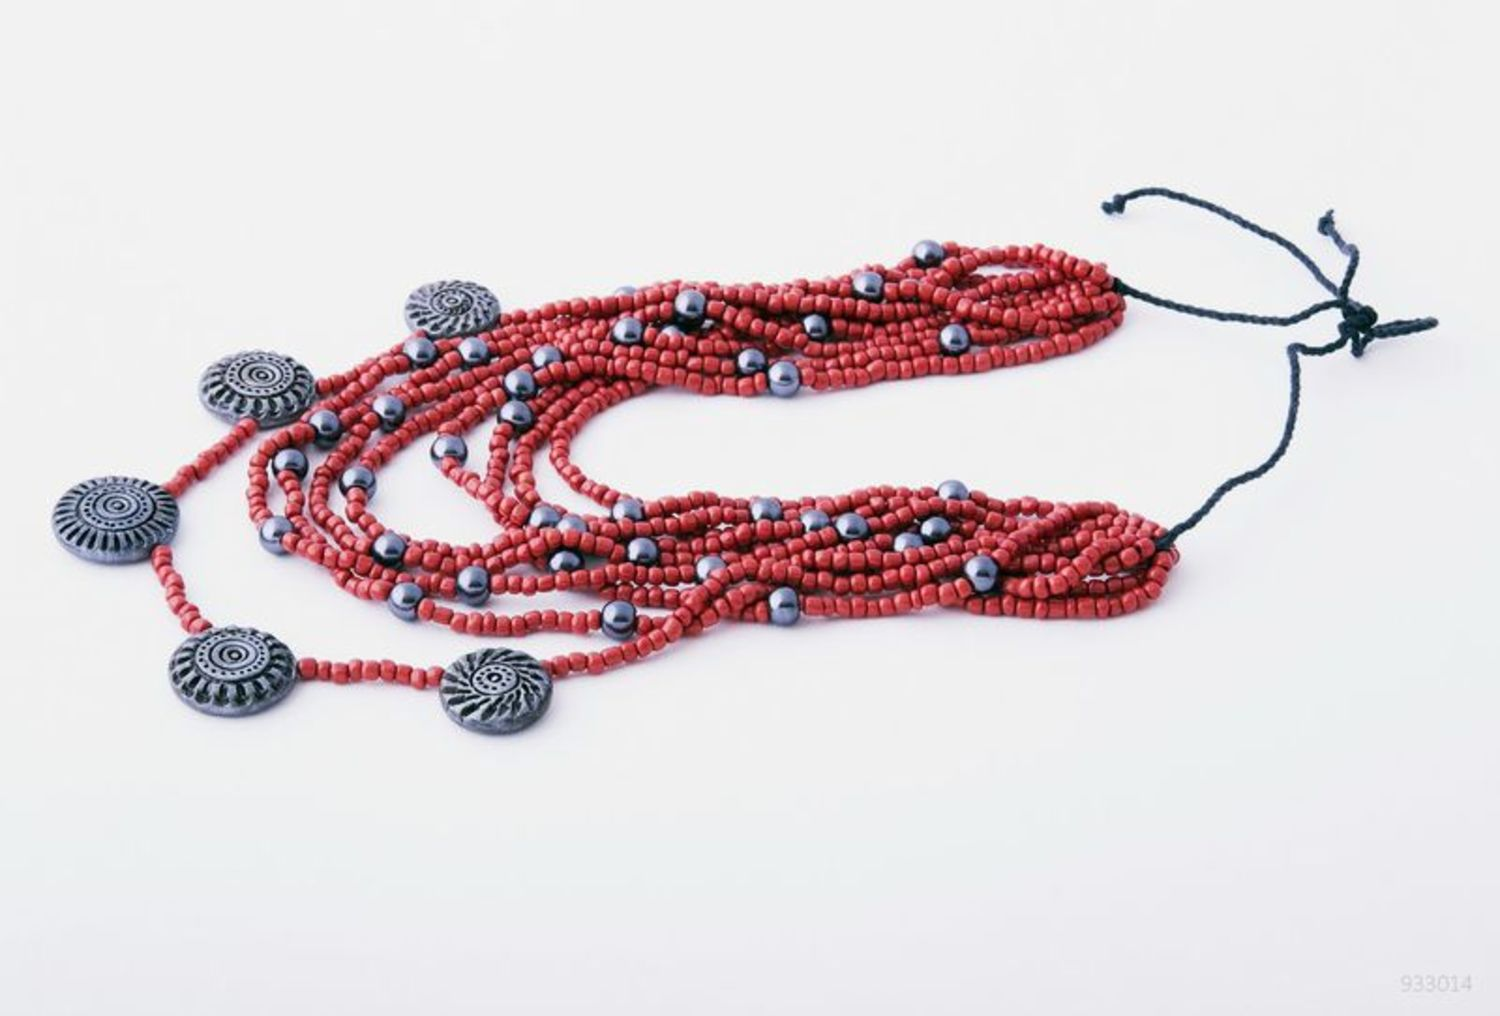 Necklace made of beads photo 4